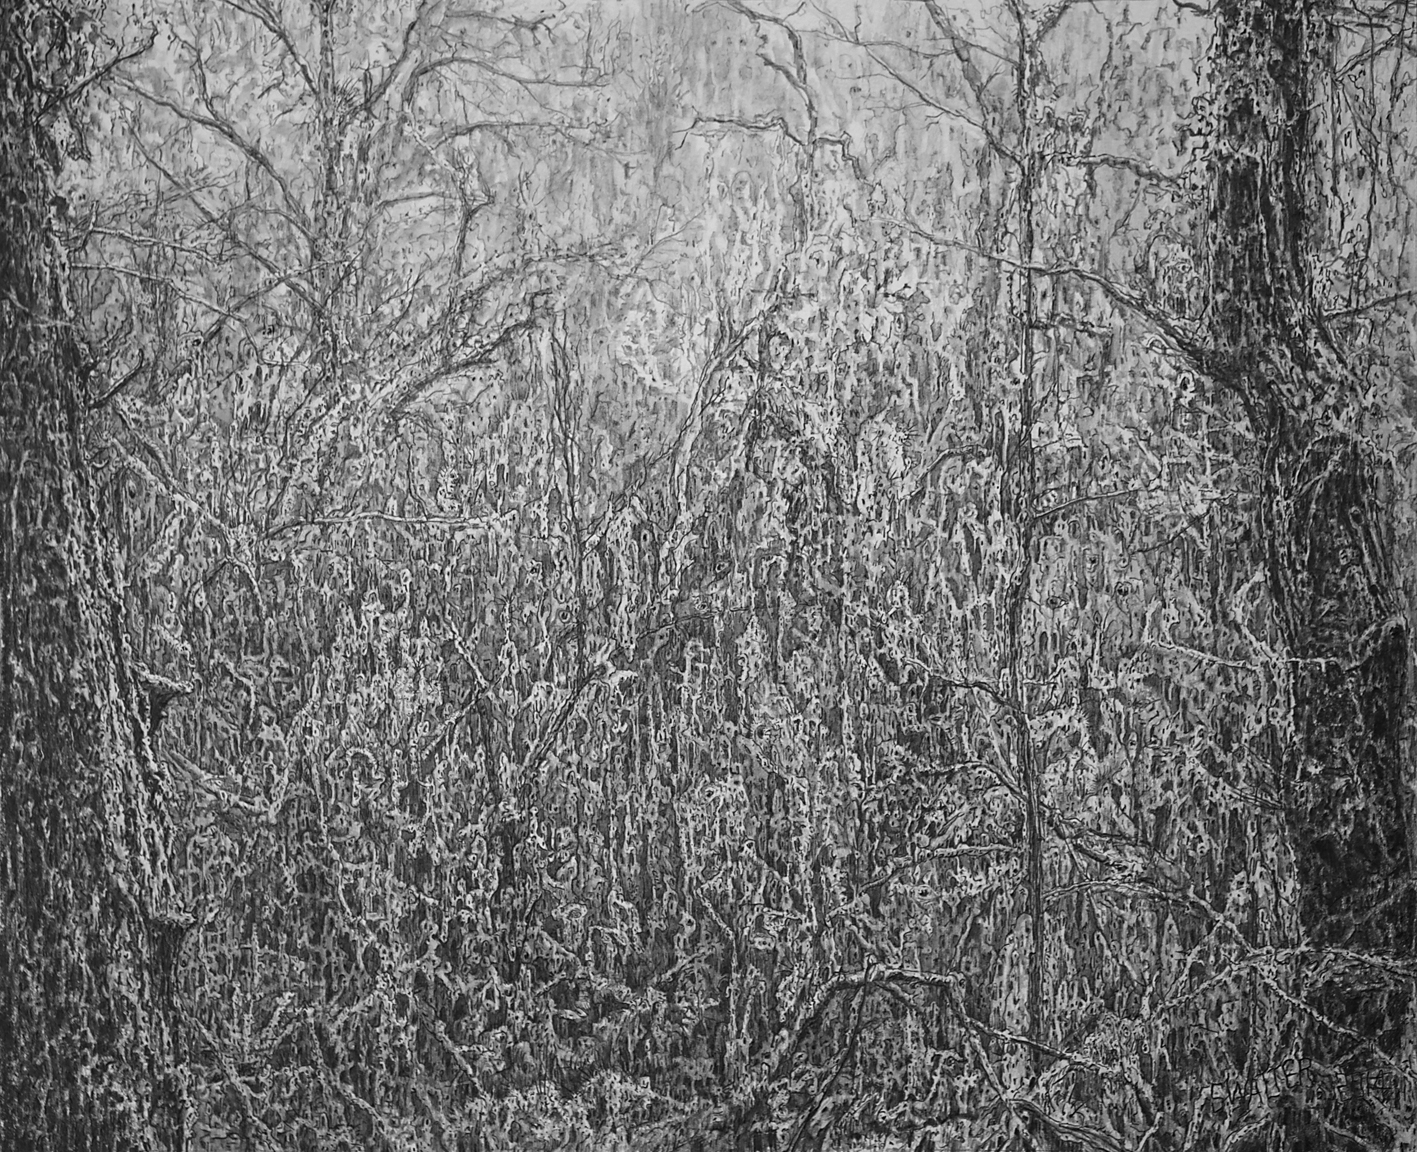 Stephen Walter: The Woods Where Them Live, 2014. Graphite on Paper. 33.5 x 41.3 cm (Courtesy Of Artist)